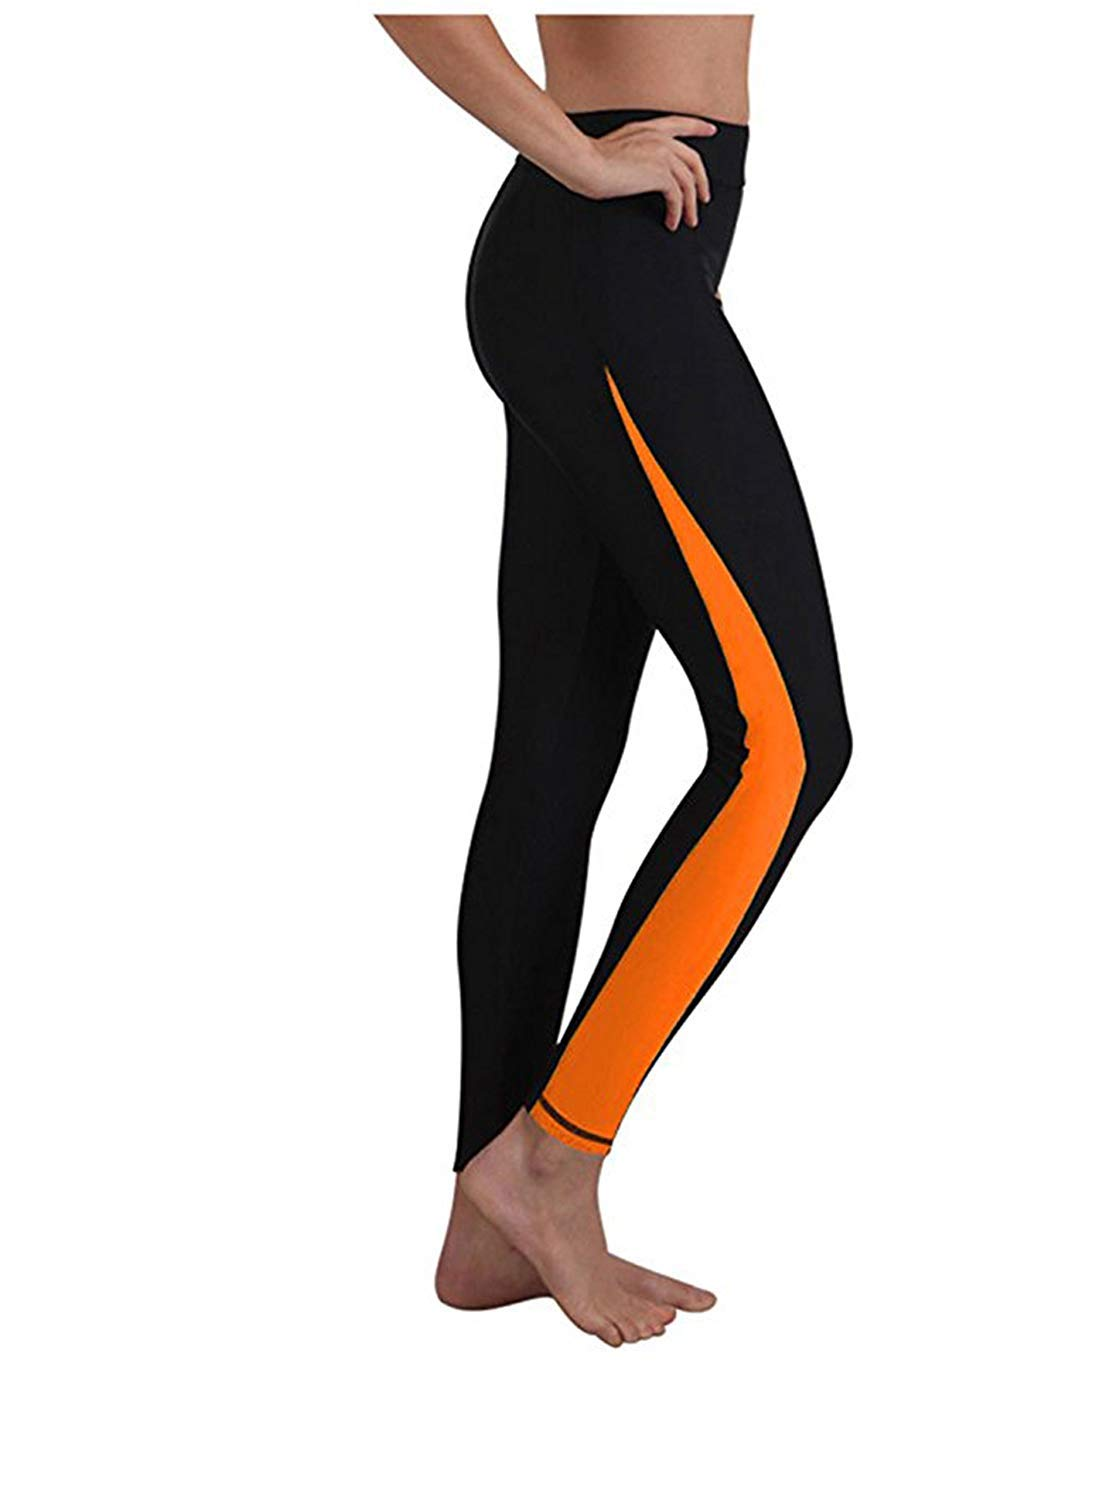 Little Beauty Surfing Leggings Swim Tights for Women, Wetsuit Pants Sun UV Protection, Comfortable and Quick Dry, Perfect for Diving, Snorkeling, Canoeing, Swimming by Little Beauty